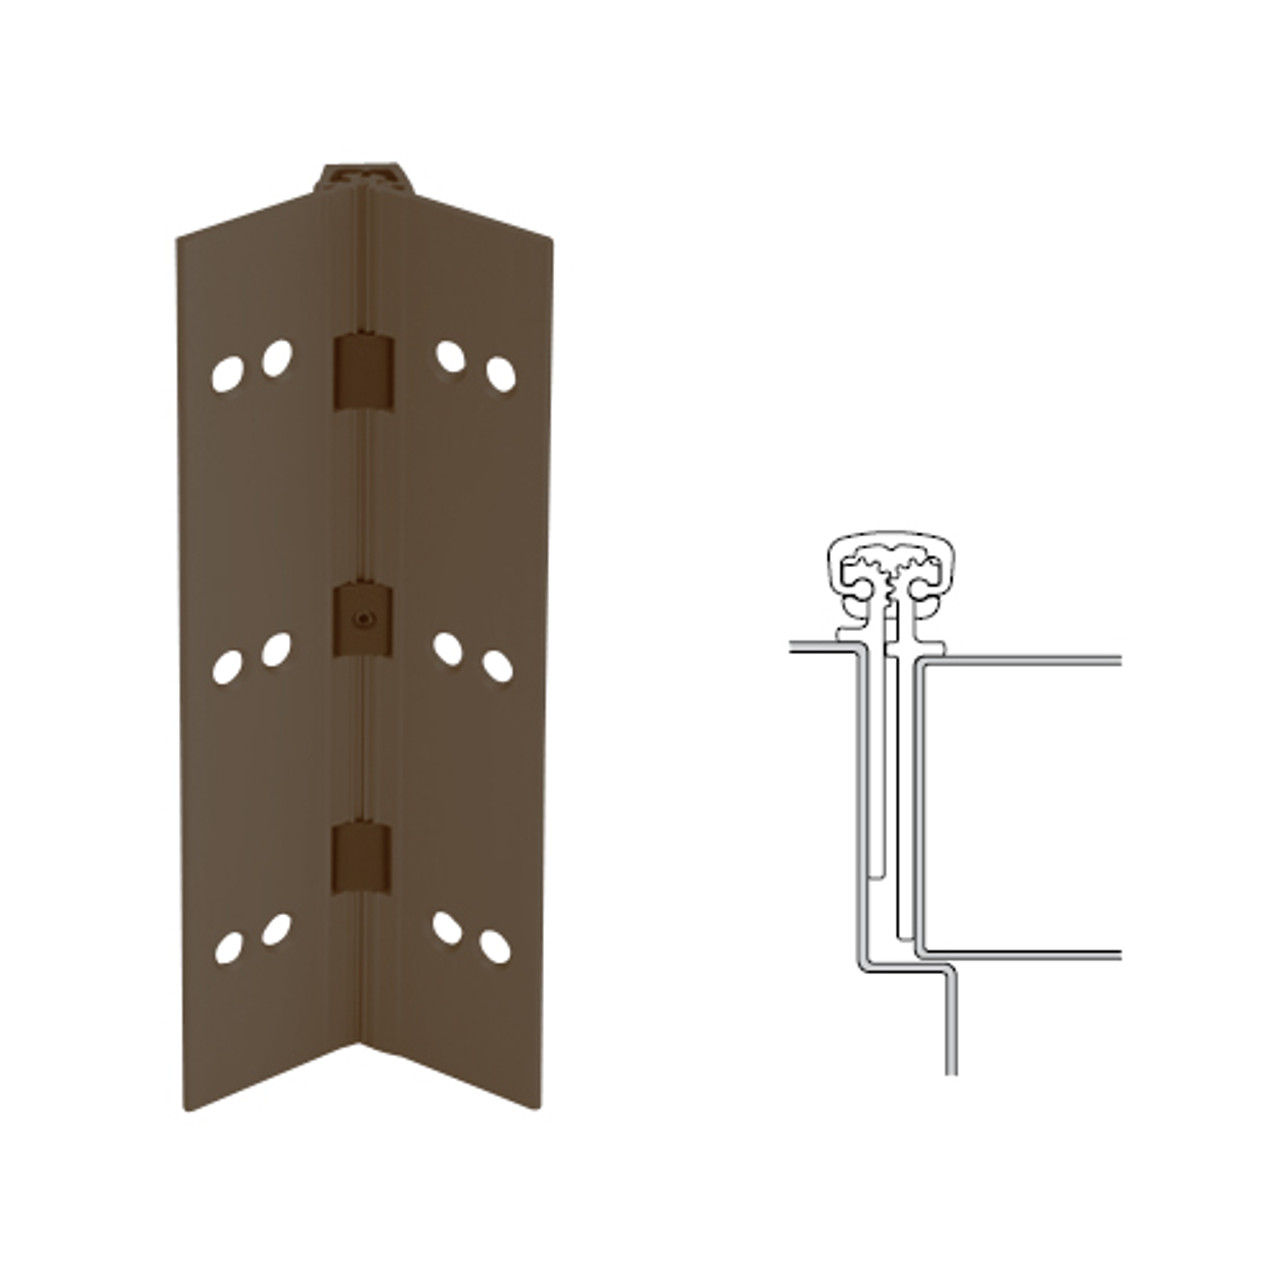 026XY-313AN-95-HT IVES Full Mortise Continuous Geared Hinges with Hospital Tip in Dark Bronze Anodized